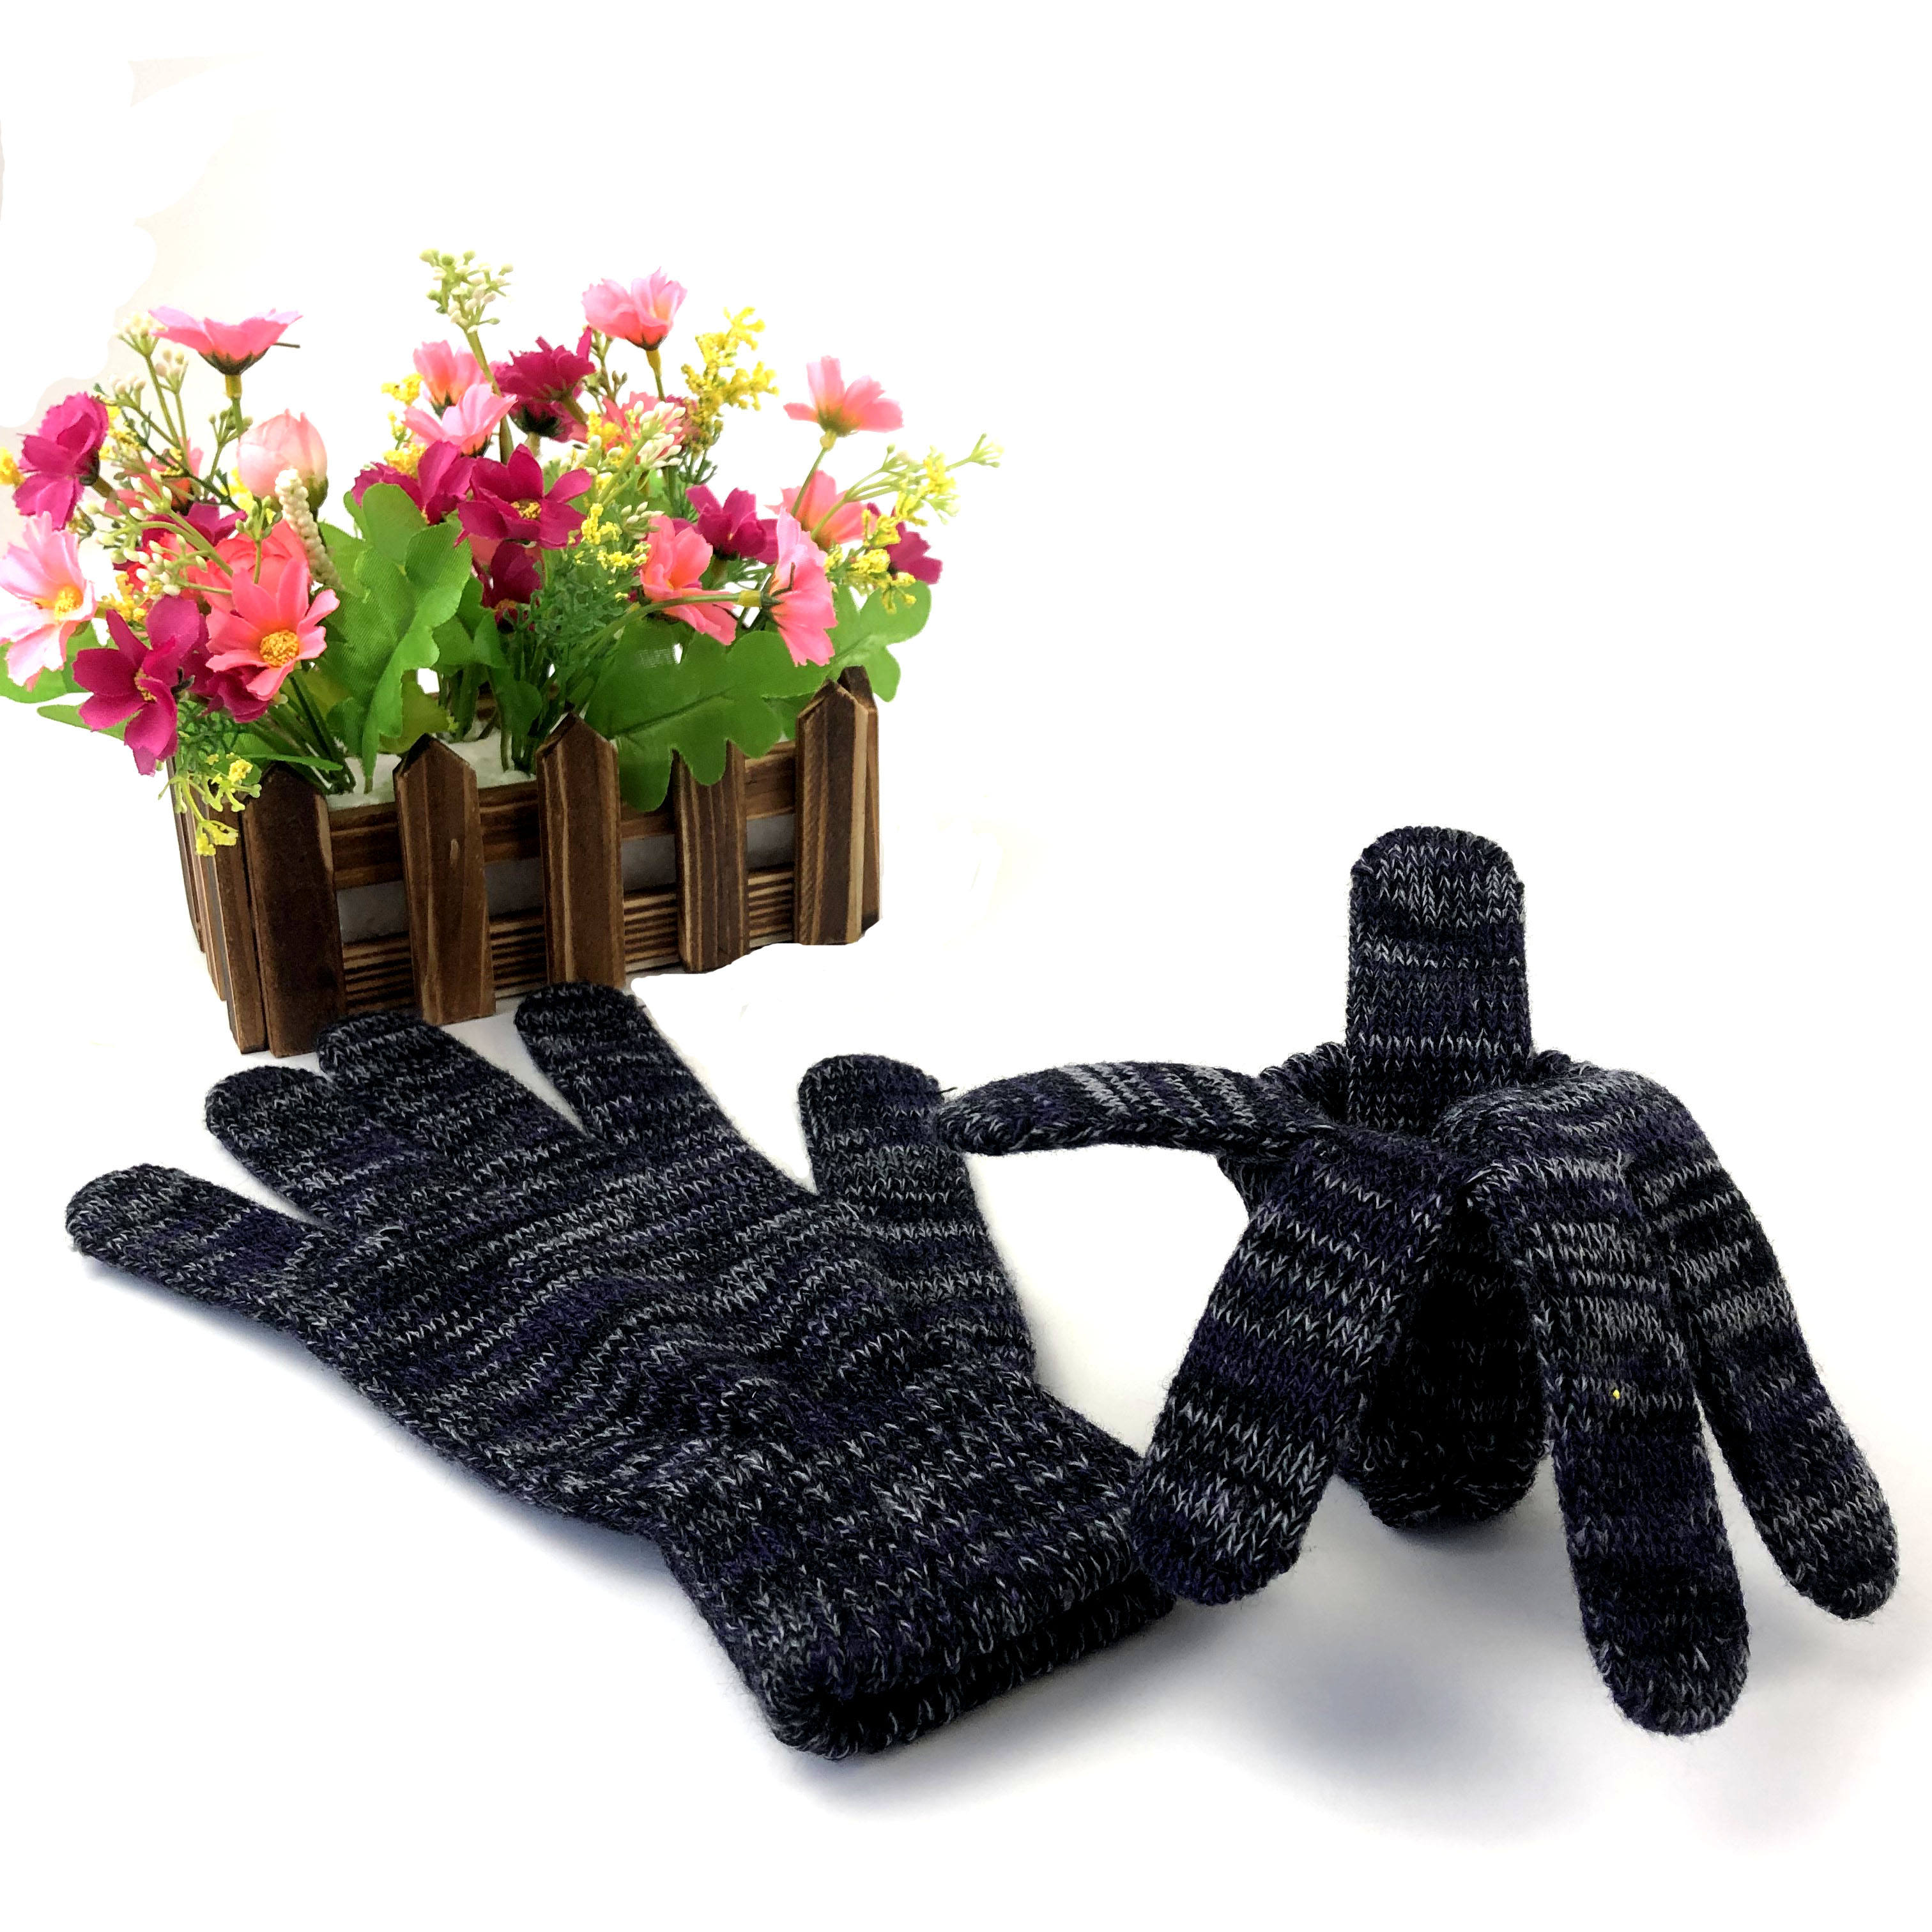 hot selling wholesale designer magic promotion winter acrylic knitted gloves